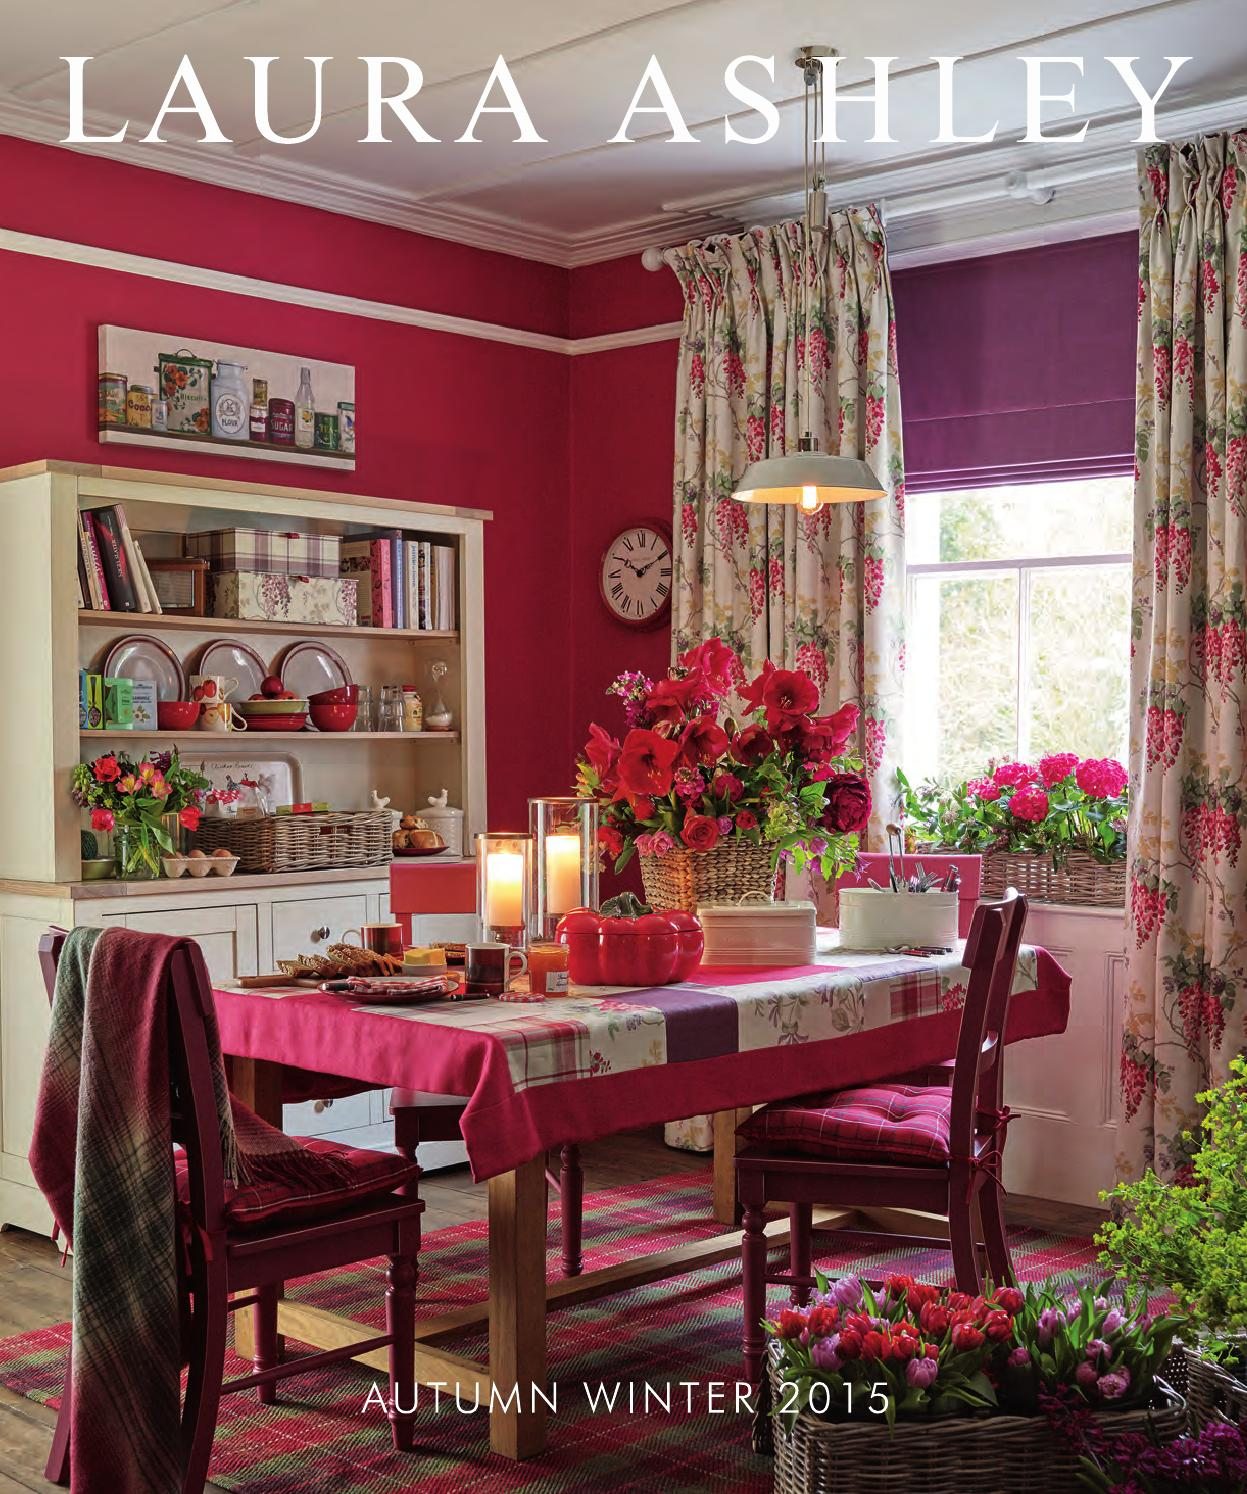 laura ashley katalog aw 2015 by laura ashley sweden issuu. Black Bedroom Furniture Sets. Home Design Ideas